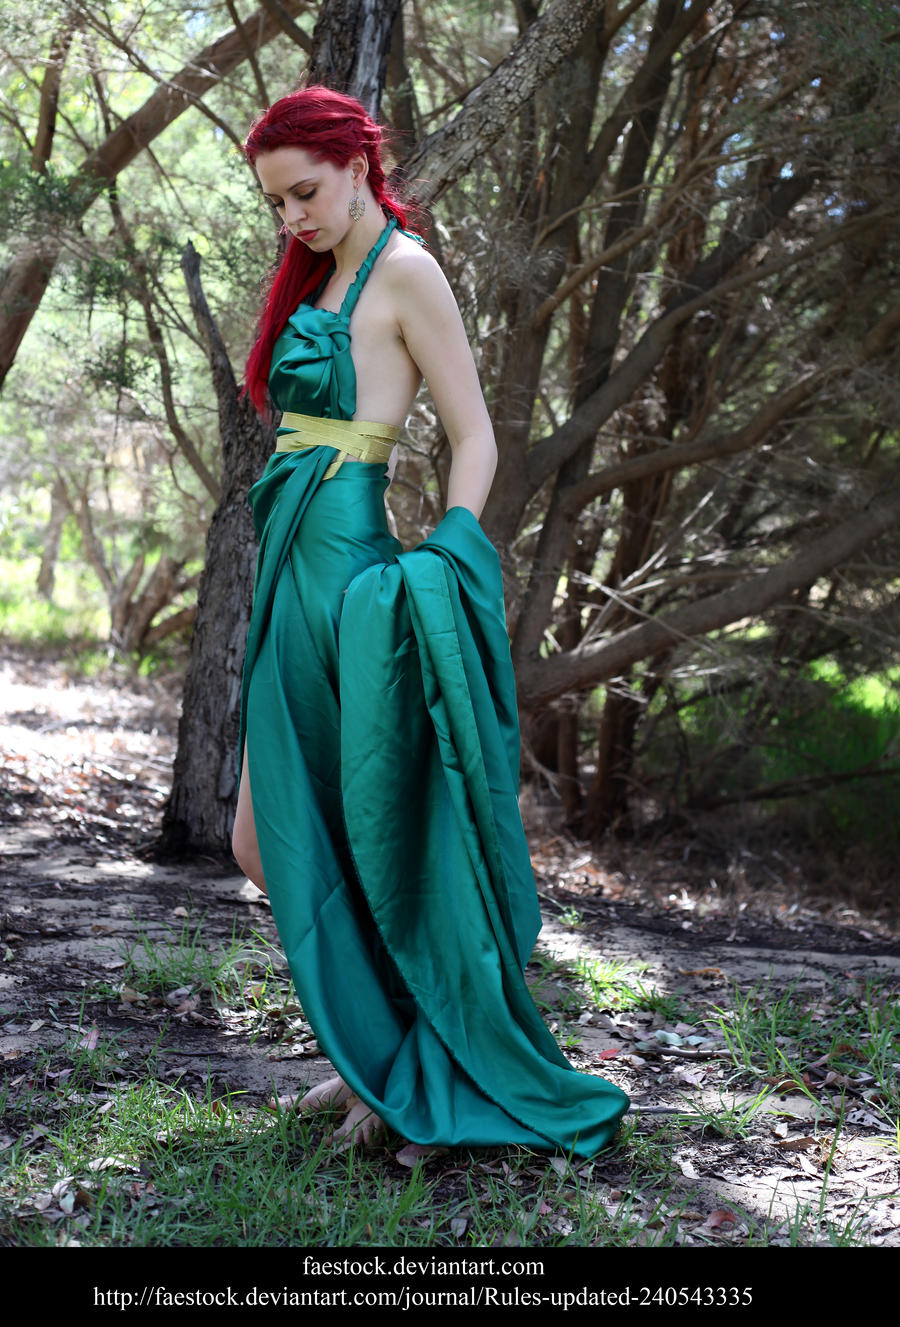 Green Silk 1 by faestock